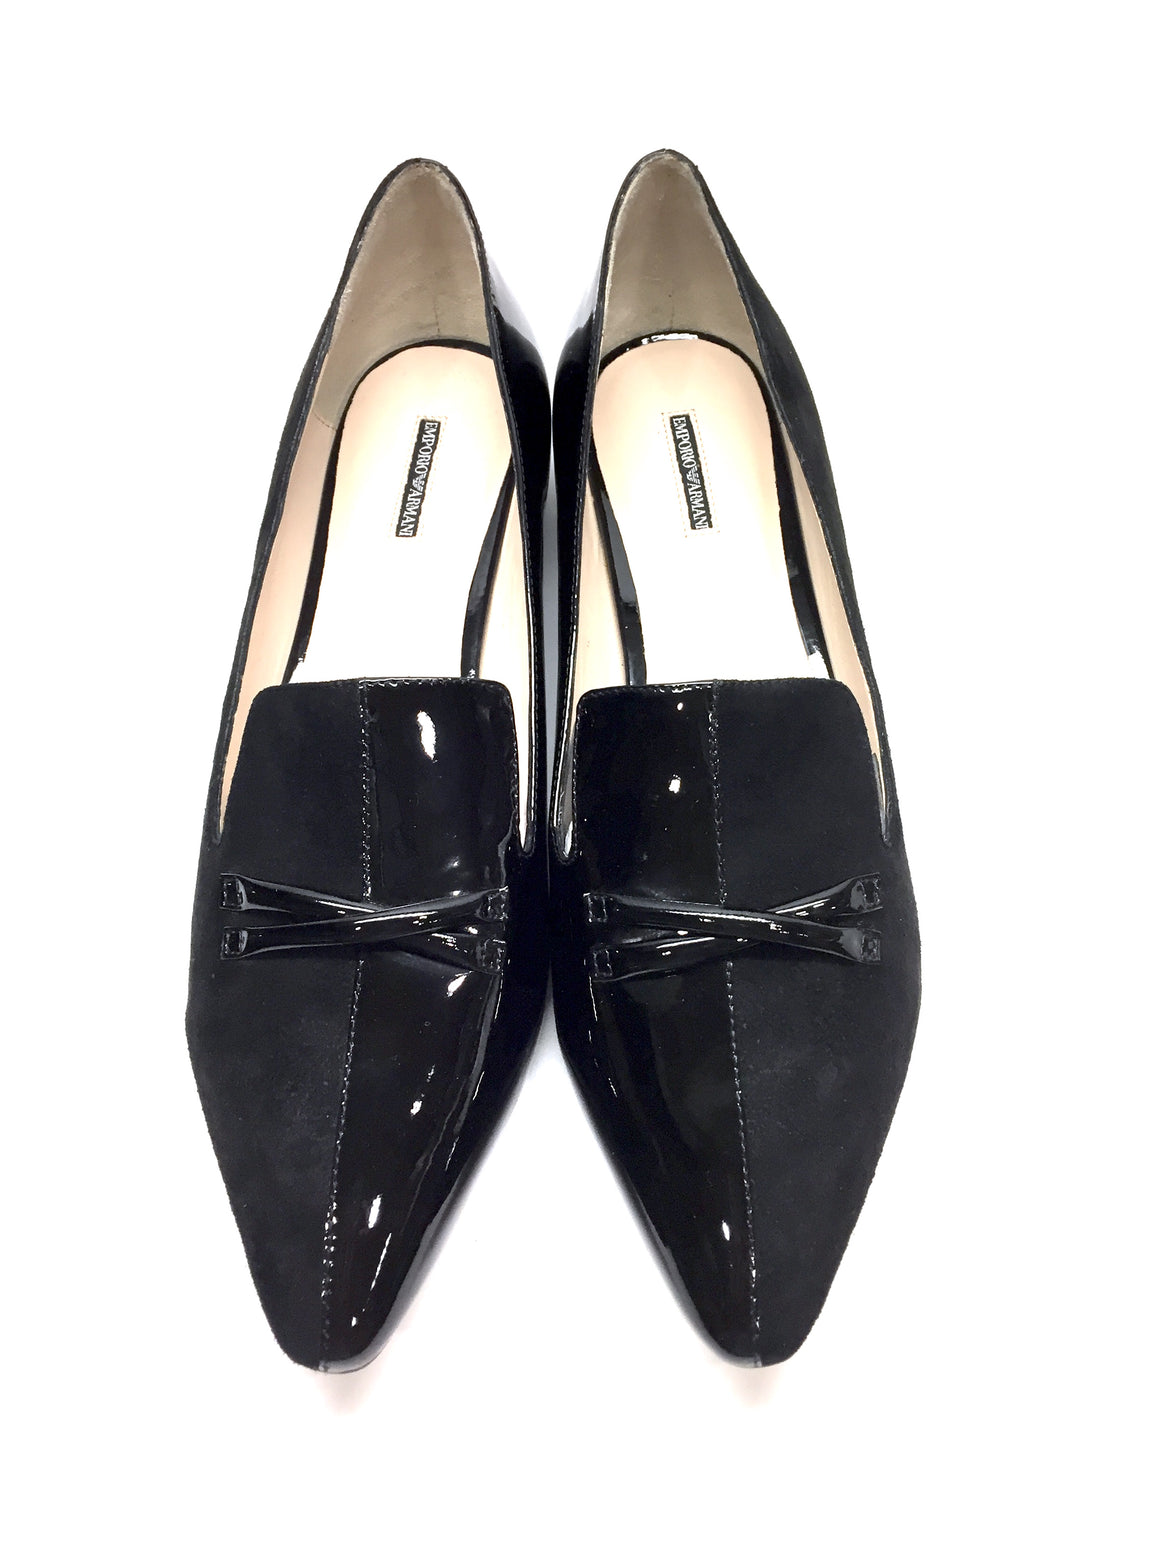 New EMPORIO ARMANI Black Suede & Patent Leather Pointed-Toe Tuxedo Flats Sz40